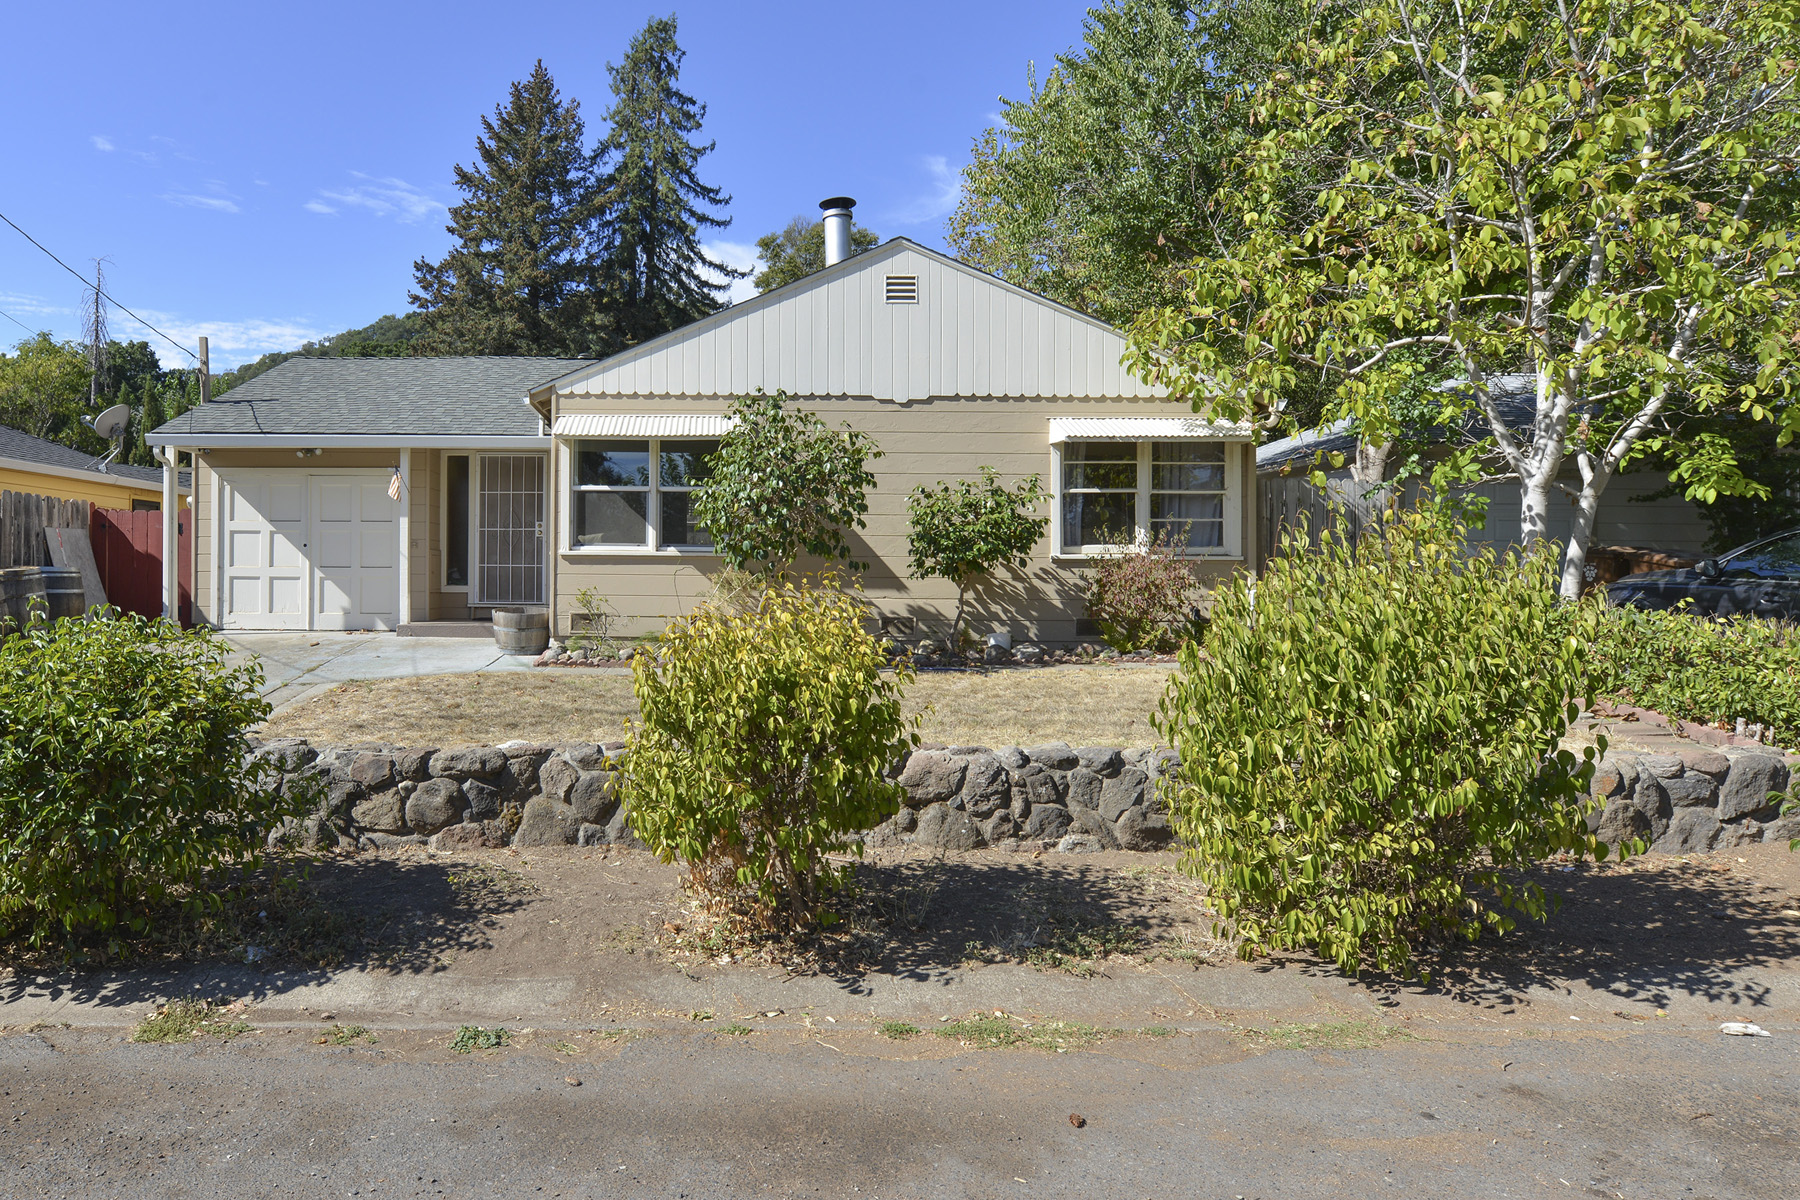 Property For Sale at 177 Homewood Ave, Napa, CA 94558